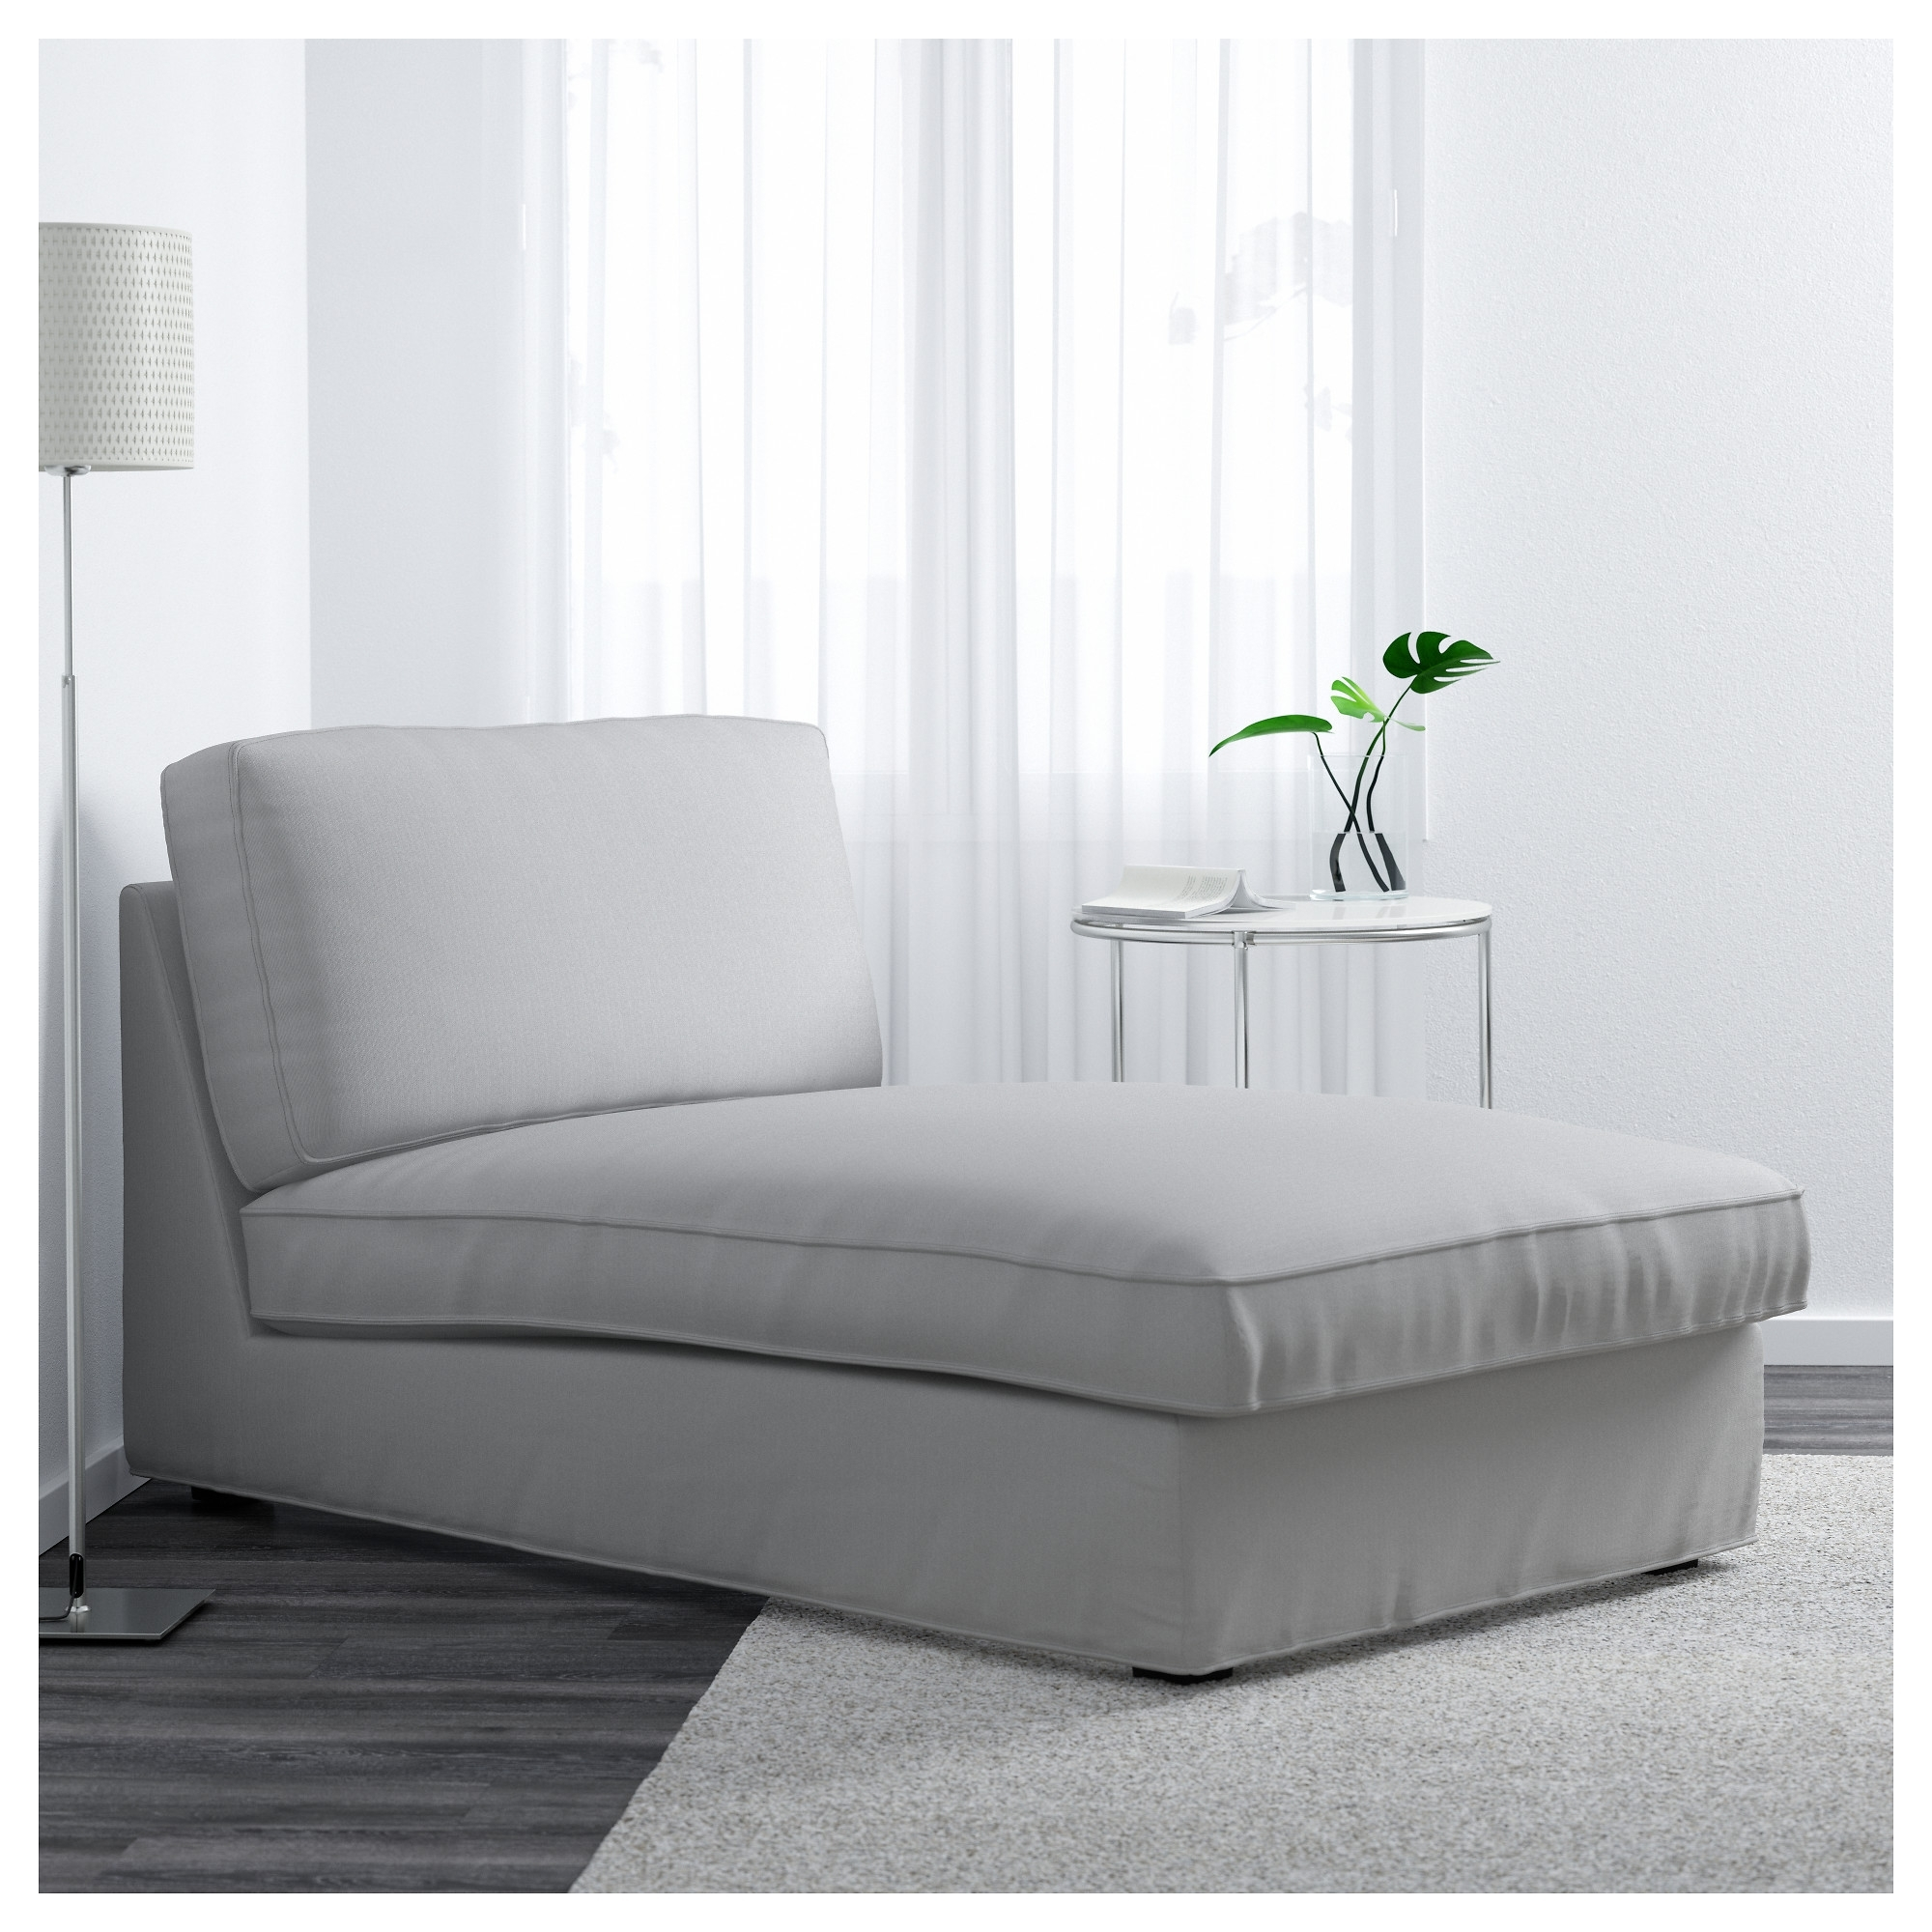 Well Known Kivik Chaise Longue Ramna Light Grey – Ikea Throughout Ikea Chaise Lounge Chairs (View 15 of 15)